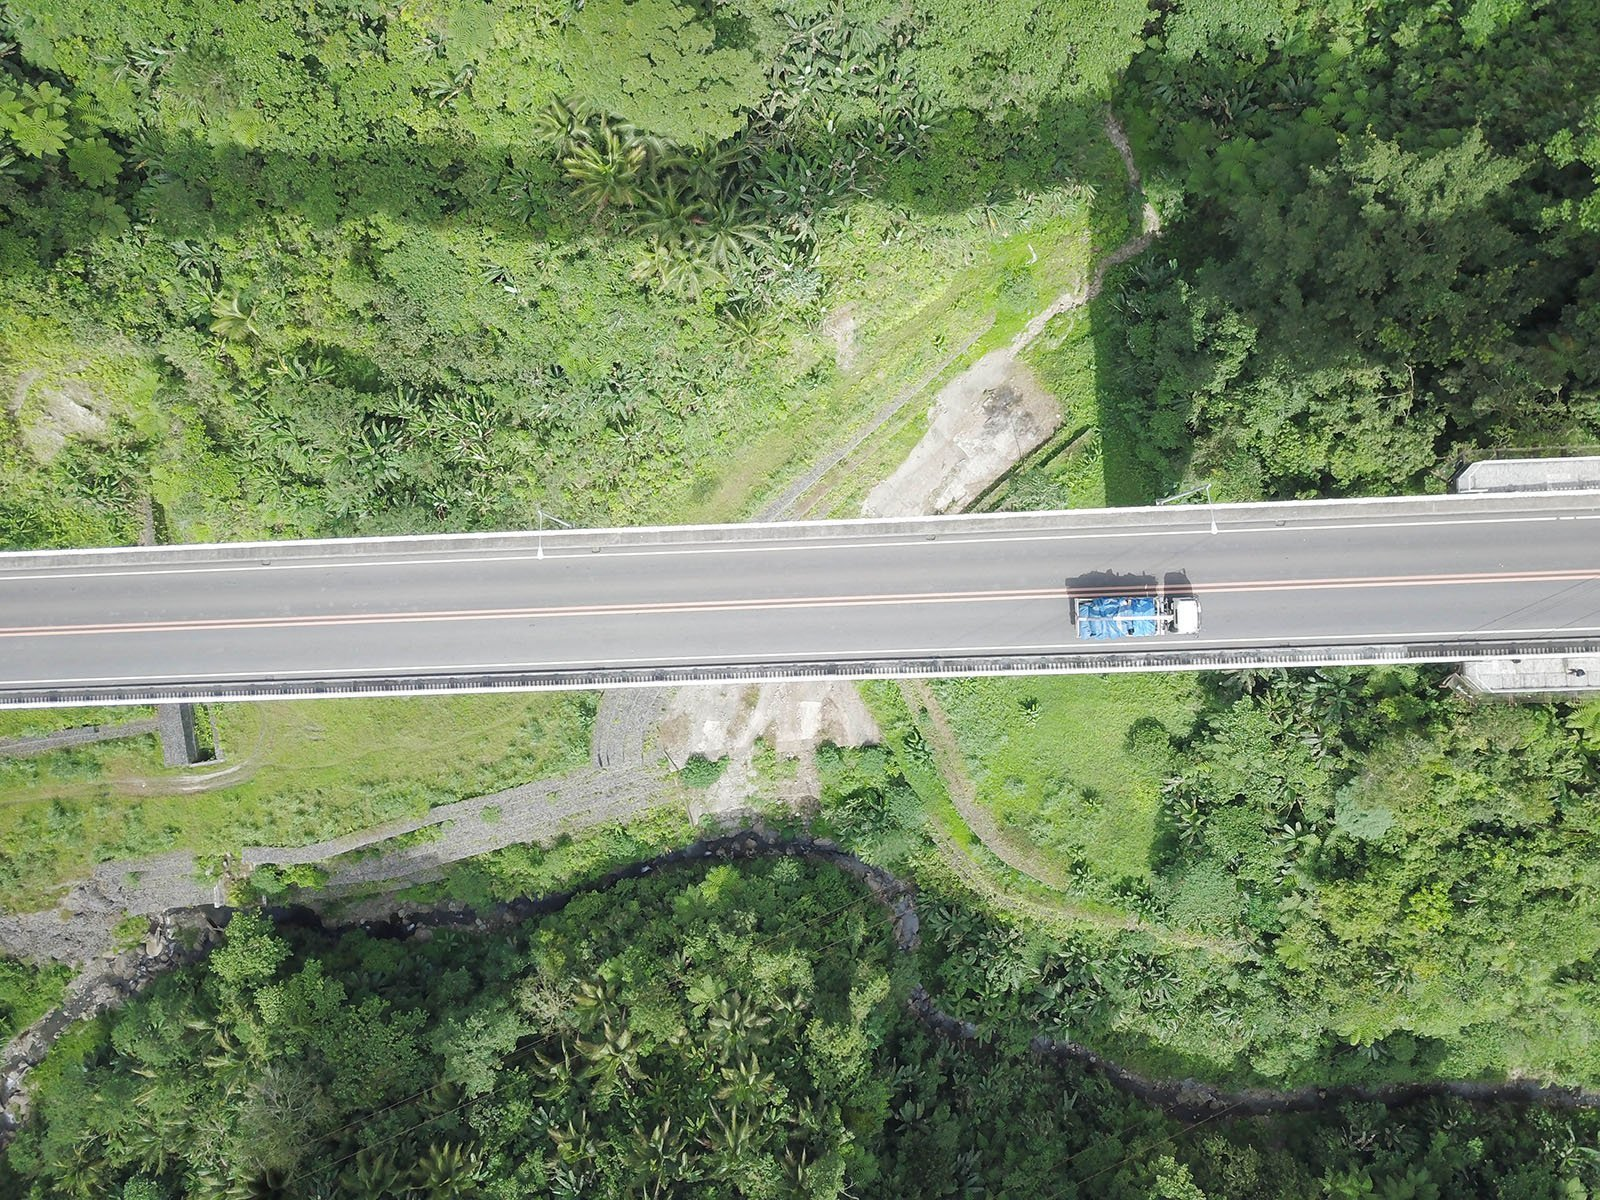 Agas-Agas Bridge: The Philippines' Tallest Bridge